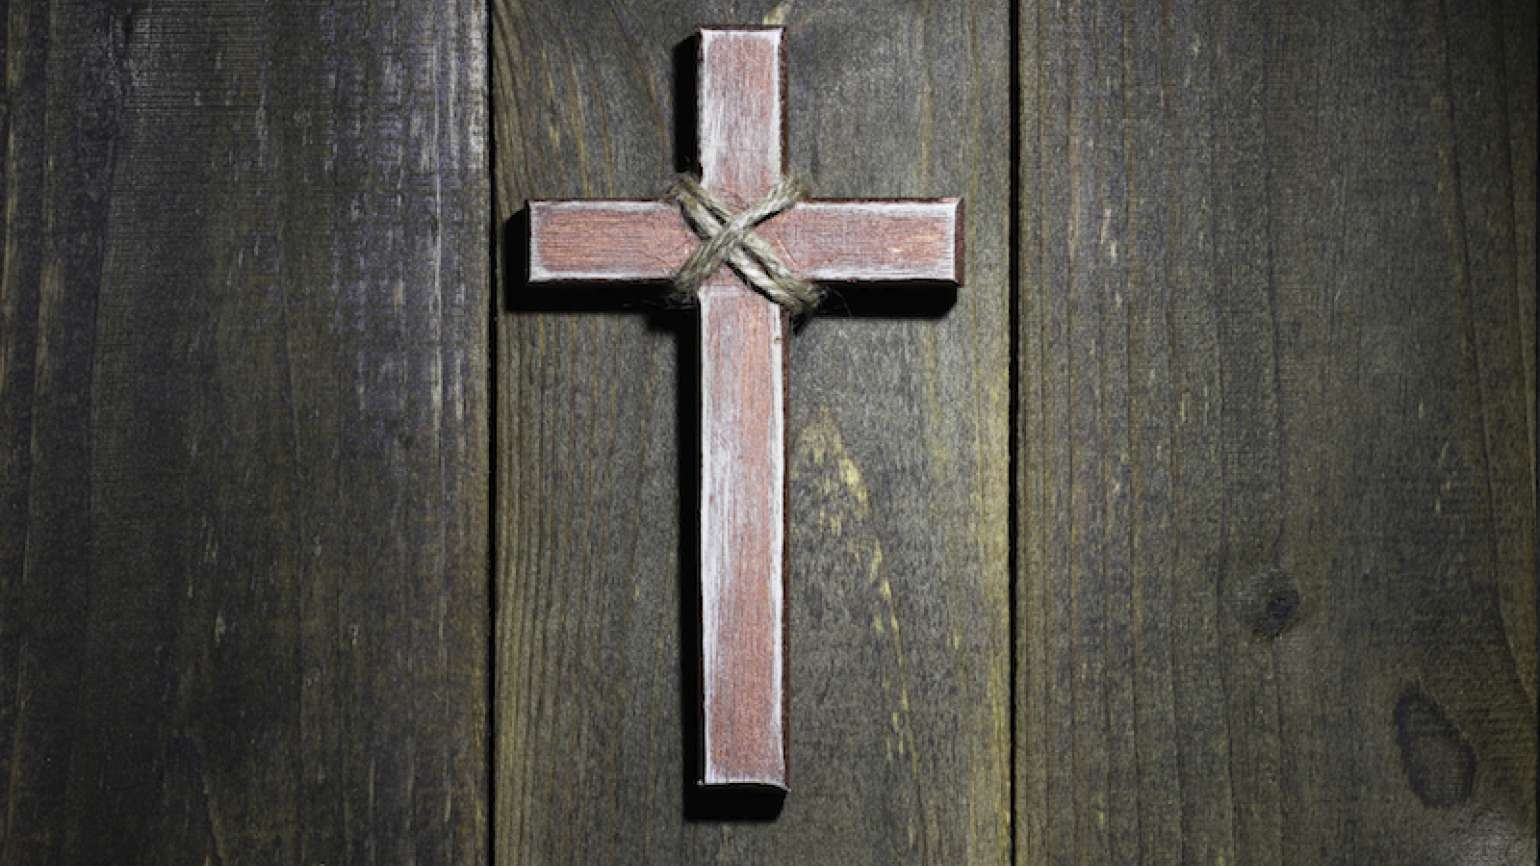 A simple cross. Photo by laurha, Thinkstock.